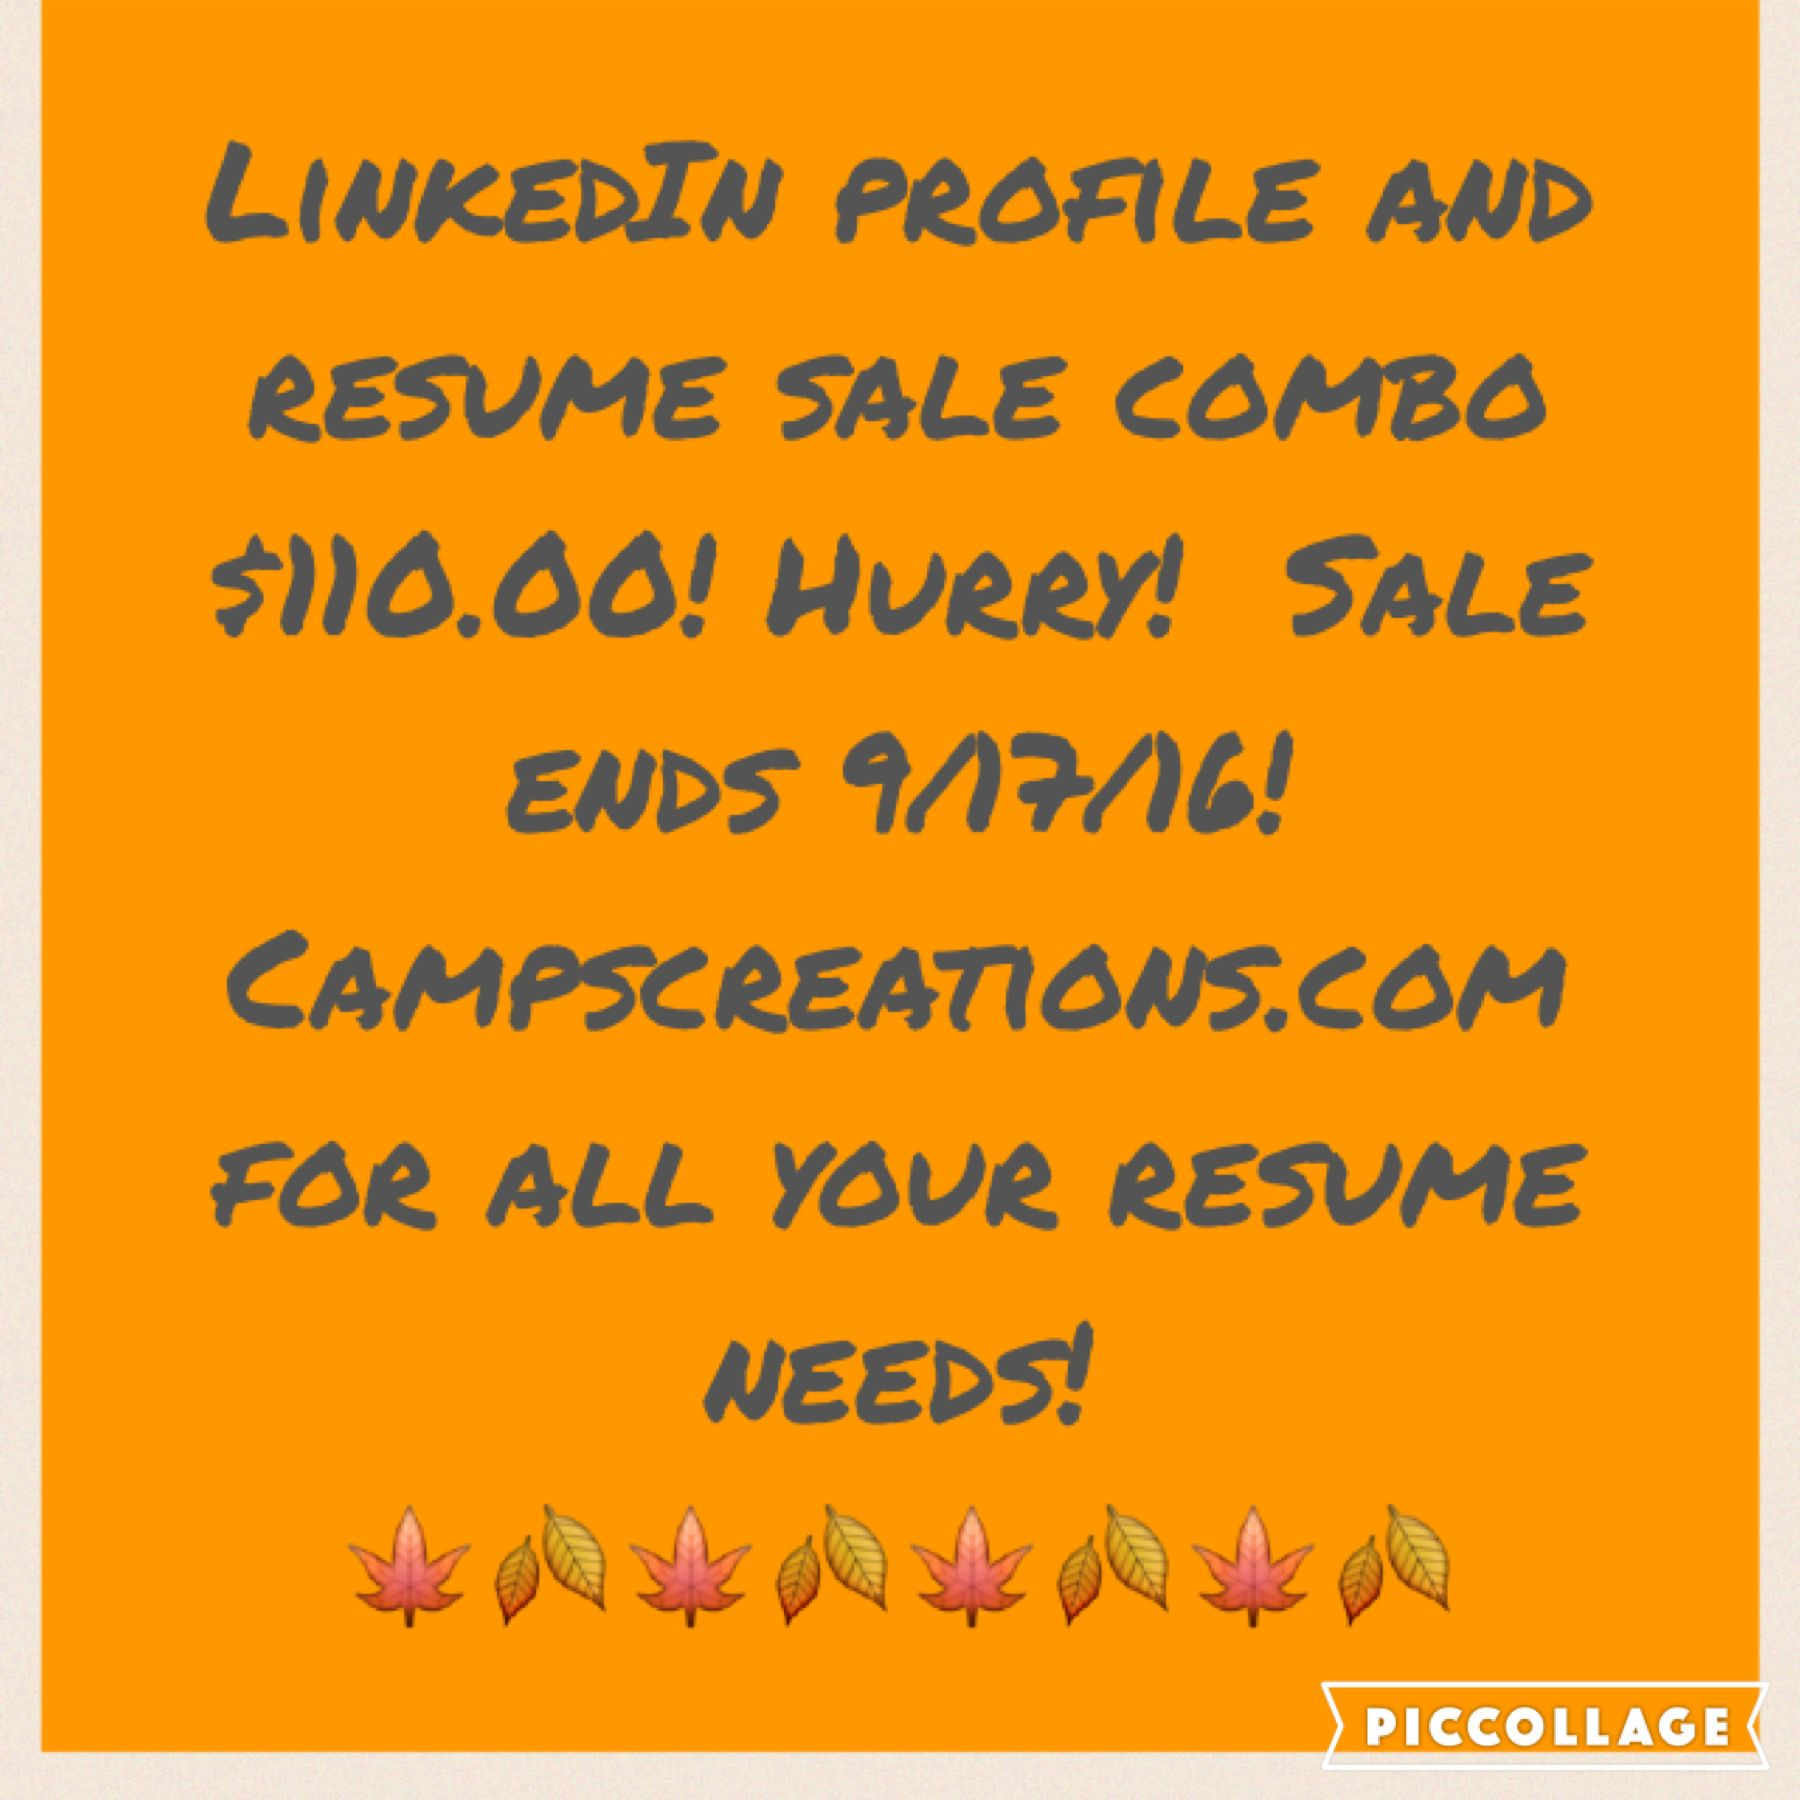 Resume and LinkedIn combo sale going on now! Editing